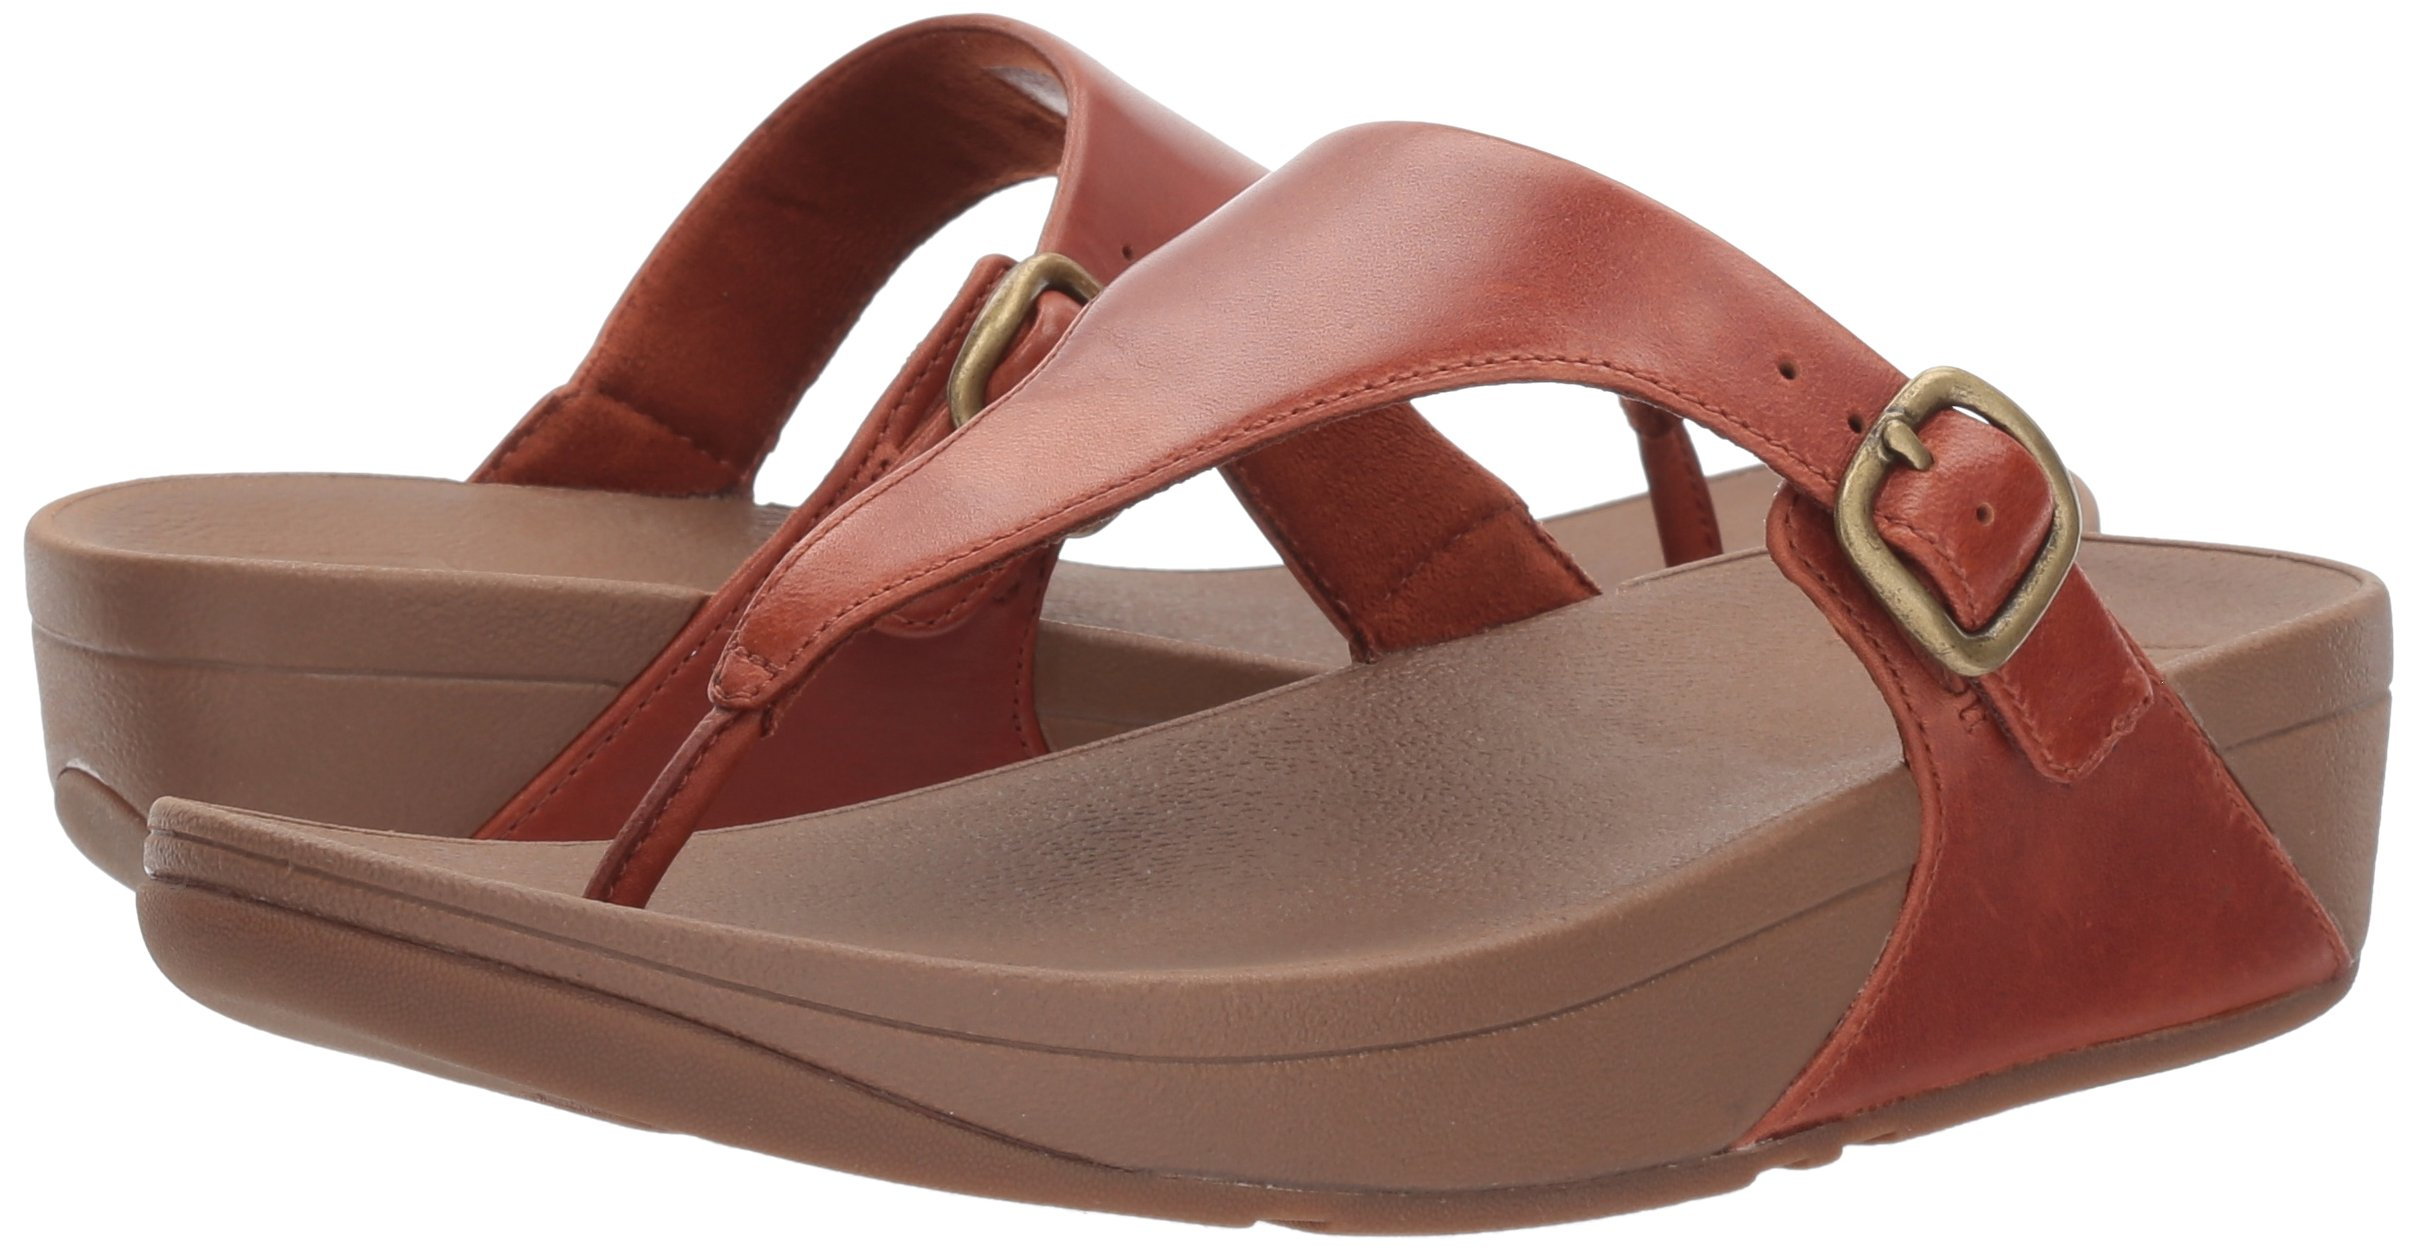 FitFlop Women's The Skinny Leather Toe-Thong Sandal, Dark Tan, 10 M US by FitFlop (Image #6)